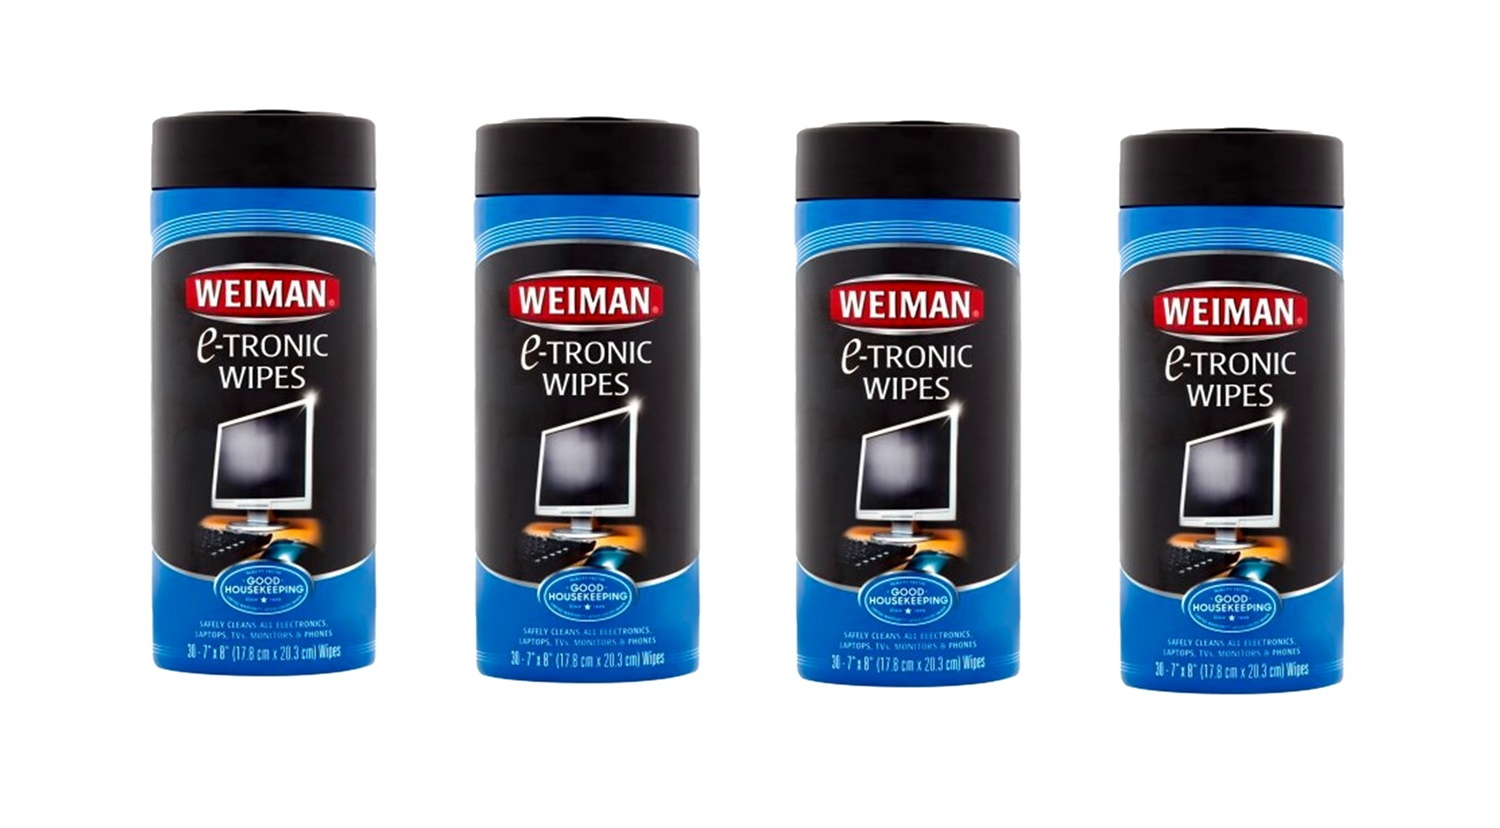 Weiman WG93 E-Tronic Wipes 30 Count 4 Pack